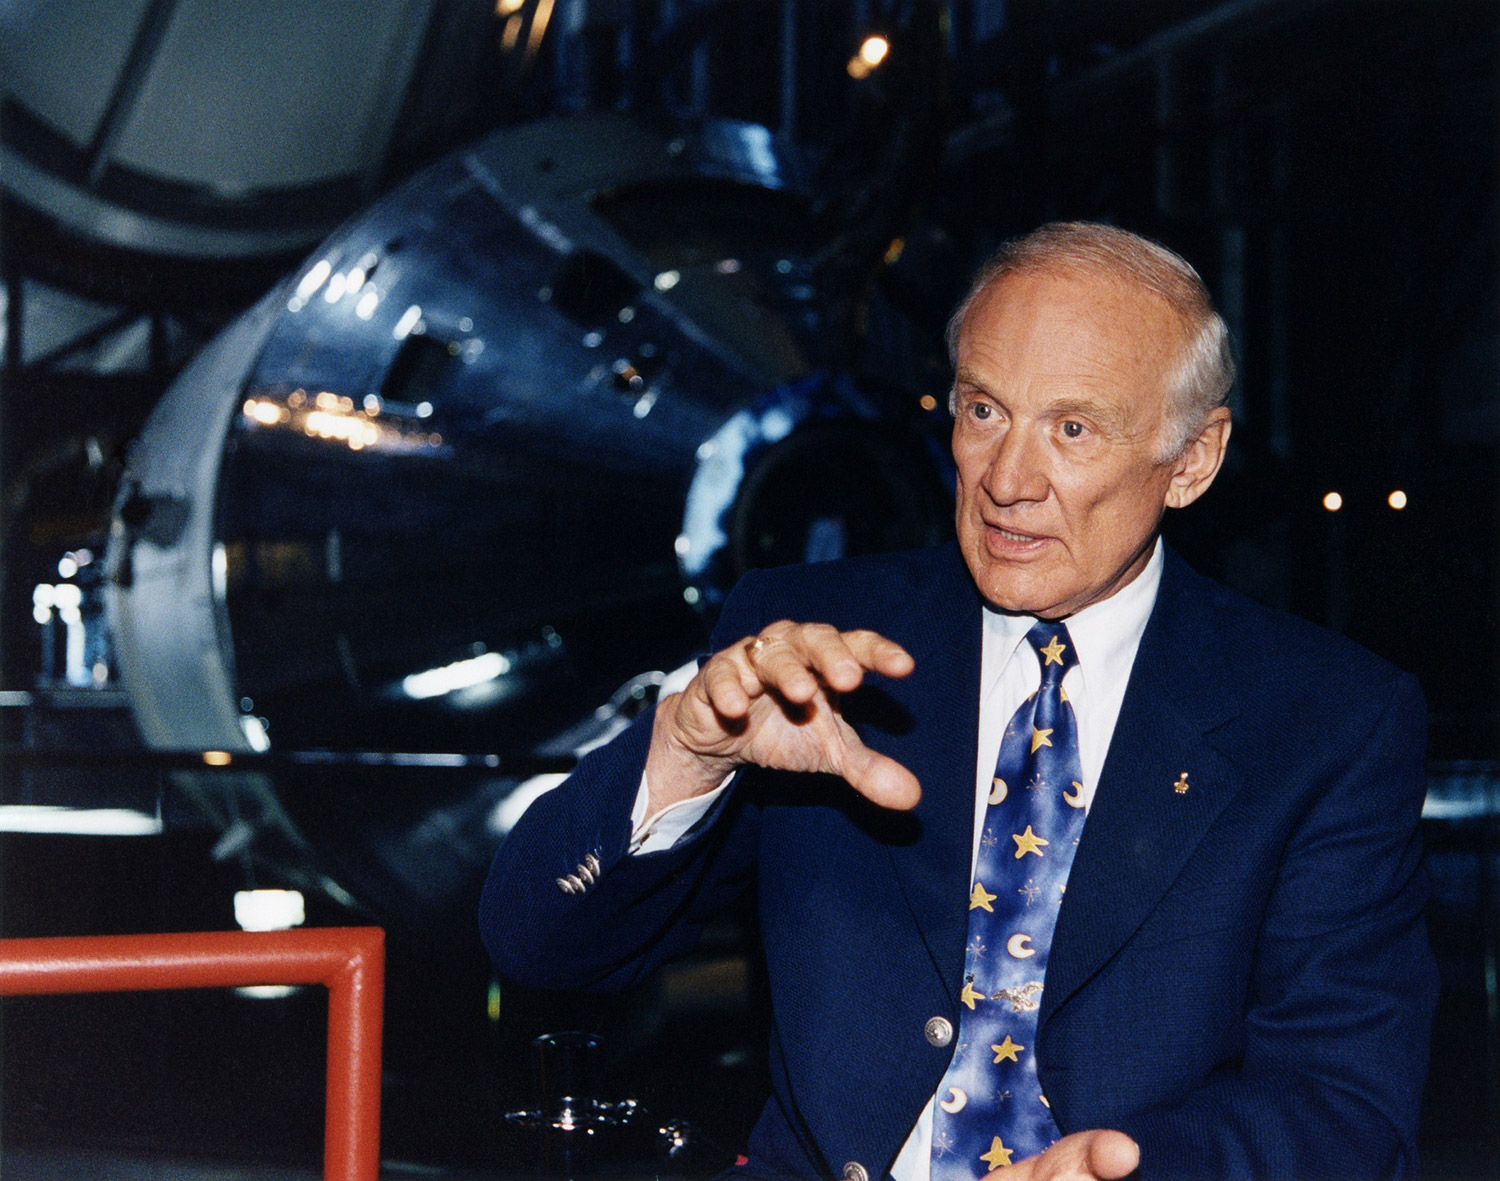 Buzz Aldrin speaking about his experiences at the Saturn V Center at Kennedy Space Center in during a celebration marking the 30th anniversary of the Apollo 11 mission. Credit: Tom Usciak